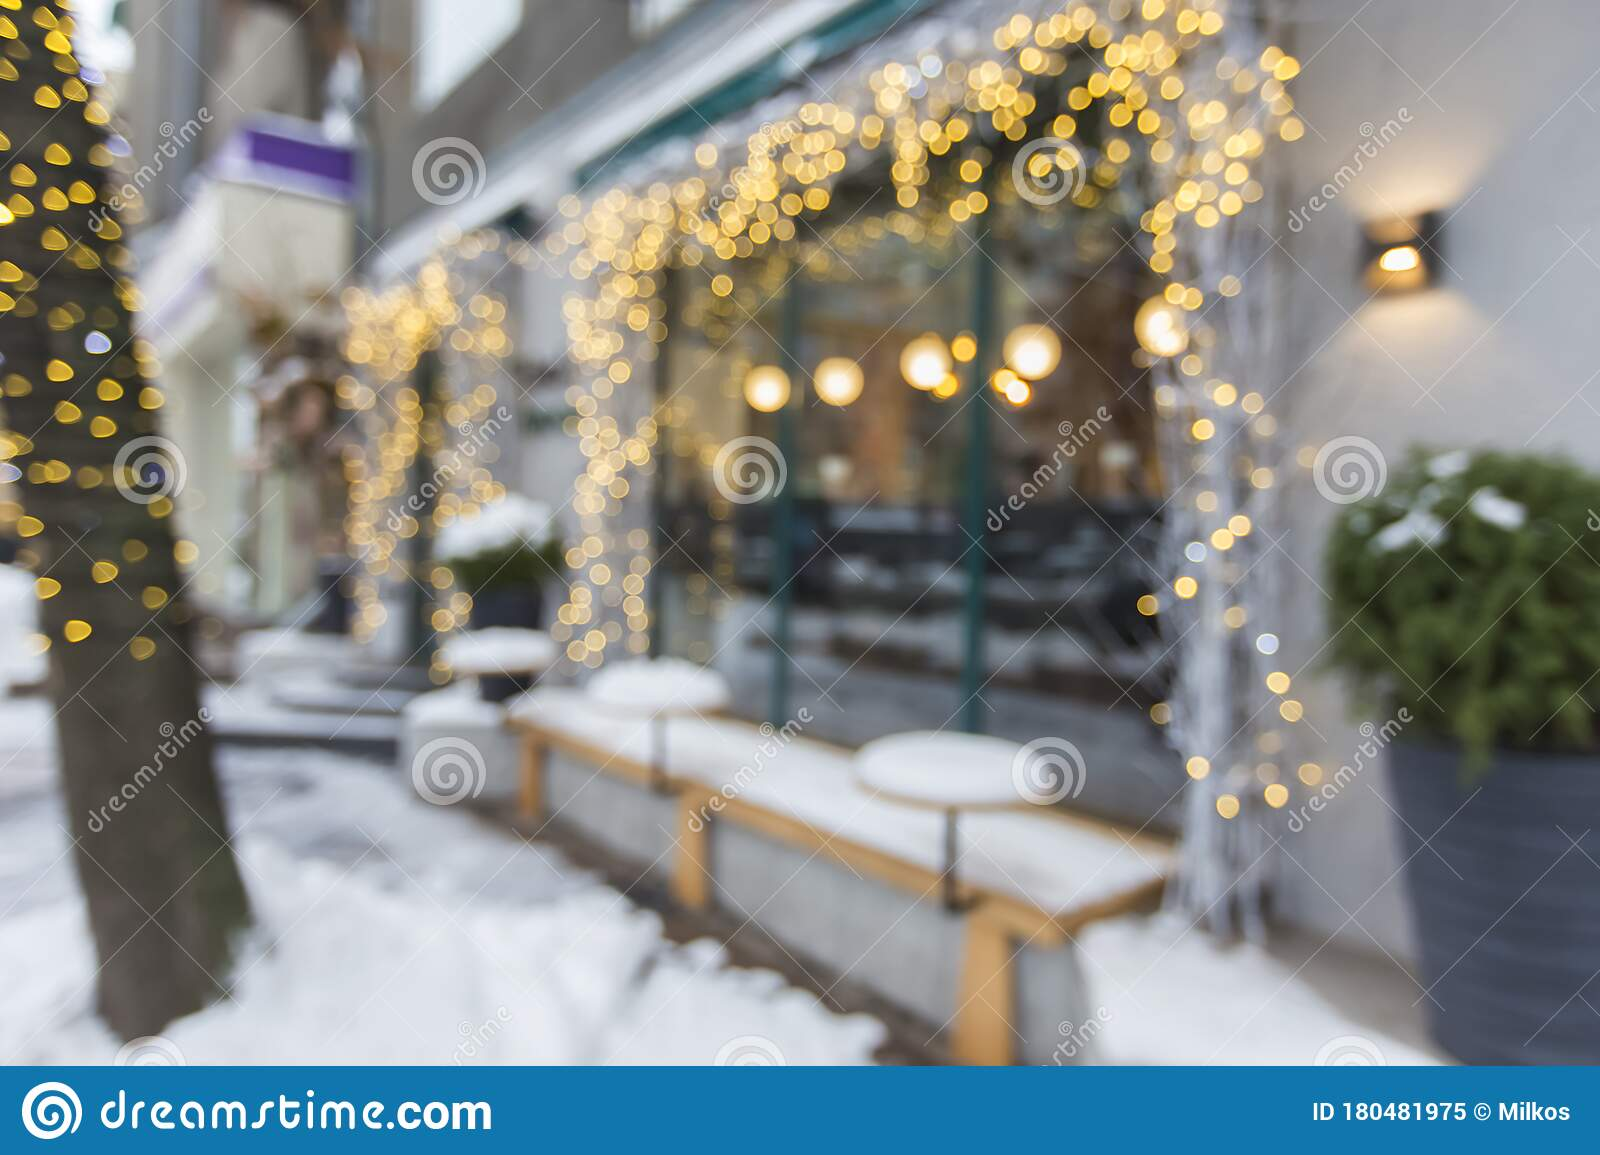 Blurred Exterior Of Luxury Restaurant With Holiday Decorations Stock Image Image Of Blurred Defocused 180481975